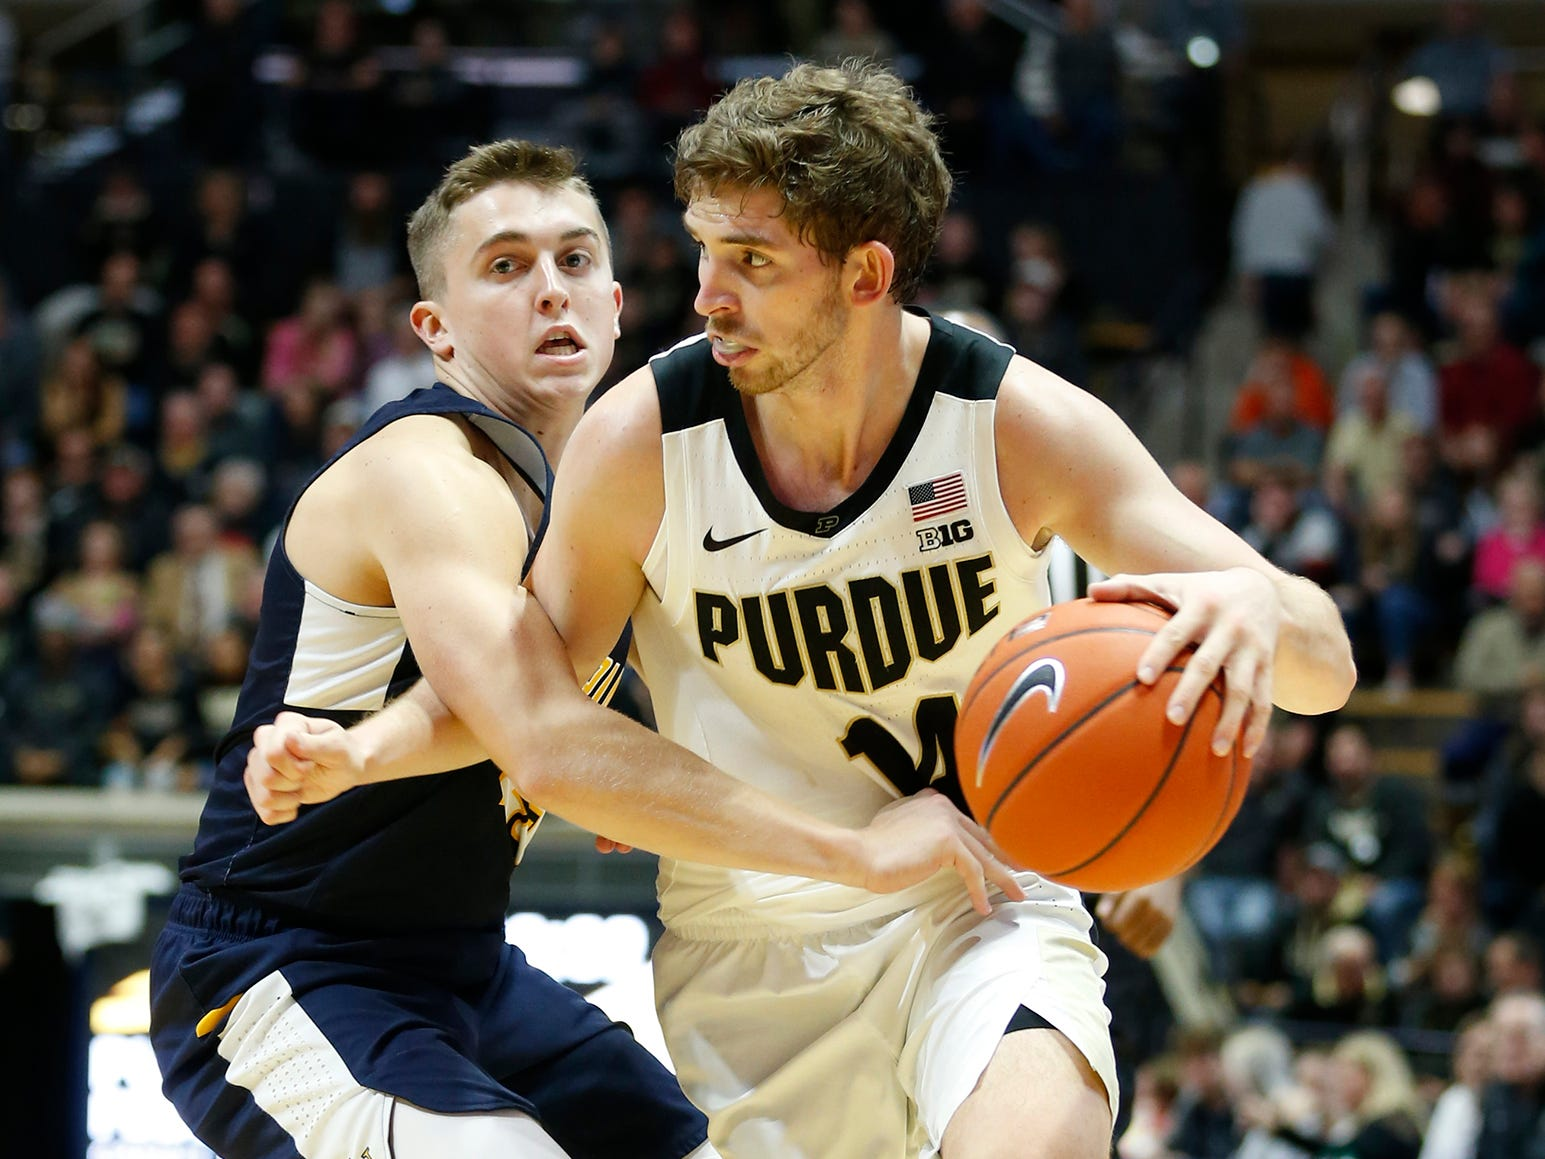 Ryan Cline of Purdue with a drive to the basket against Hayden Langkabel of Marian University Thursday, November 1, 2018, at Mackey Arena. Purdue defeated Marian University 75-56.